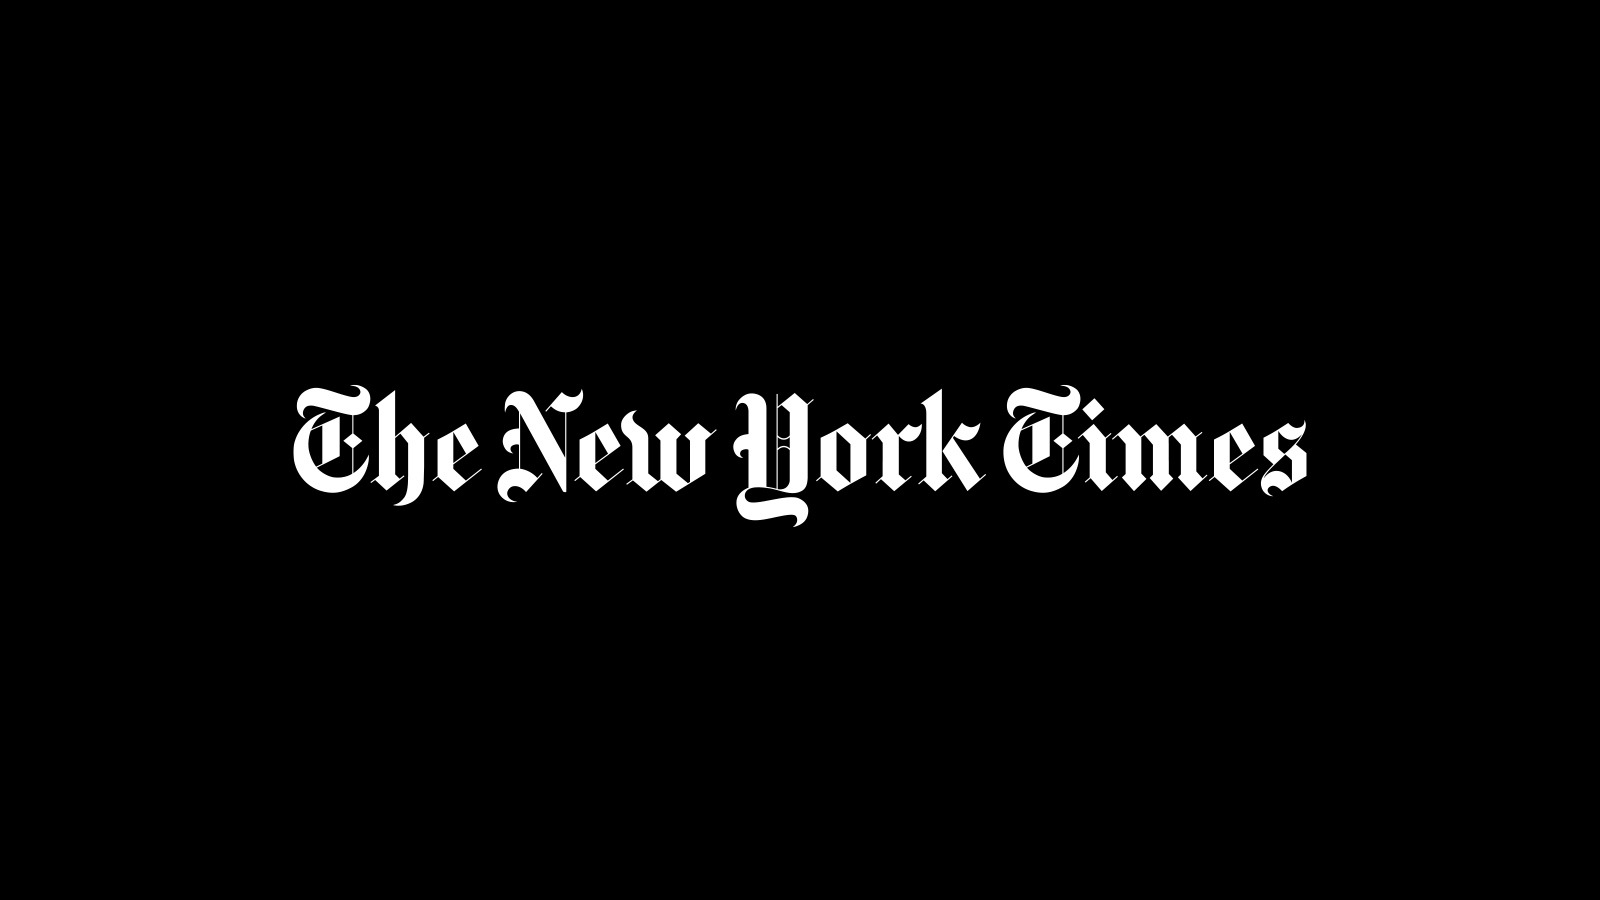 Mobile Advertising to New York Times